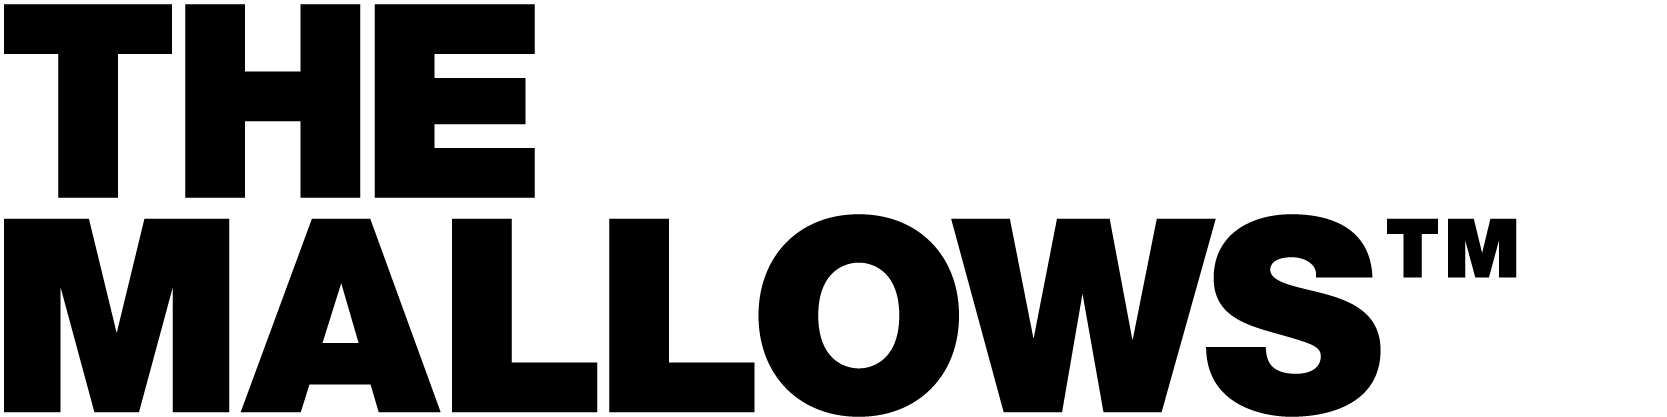 logo mallows ny.png